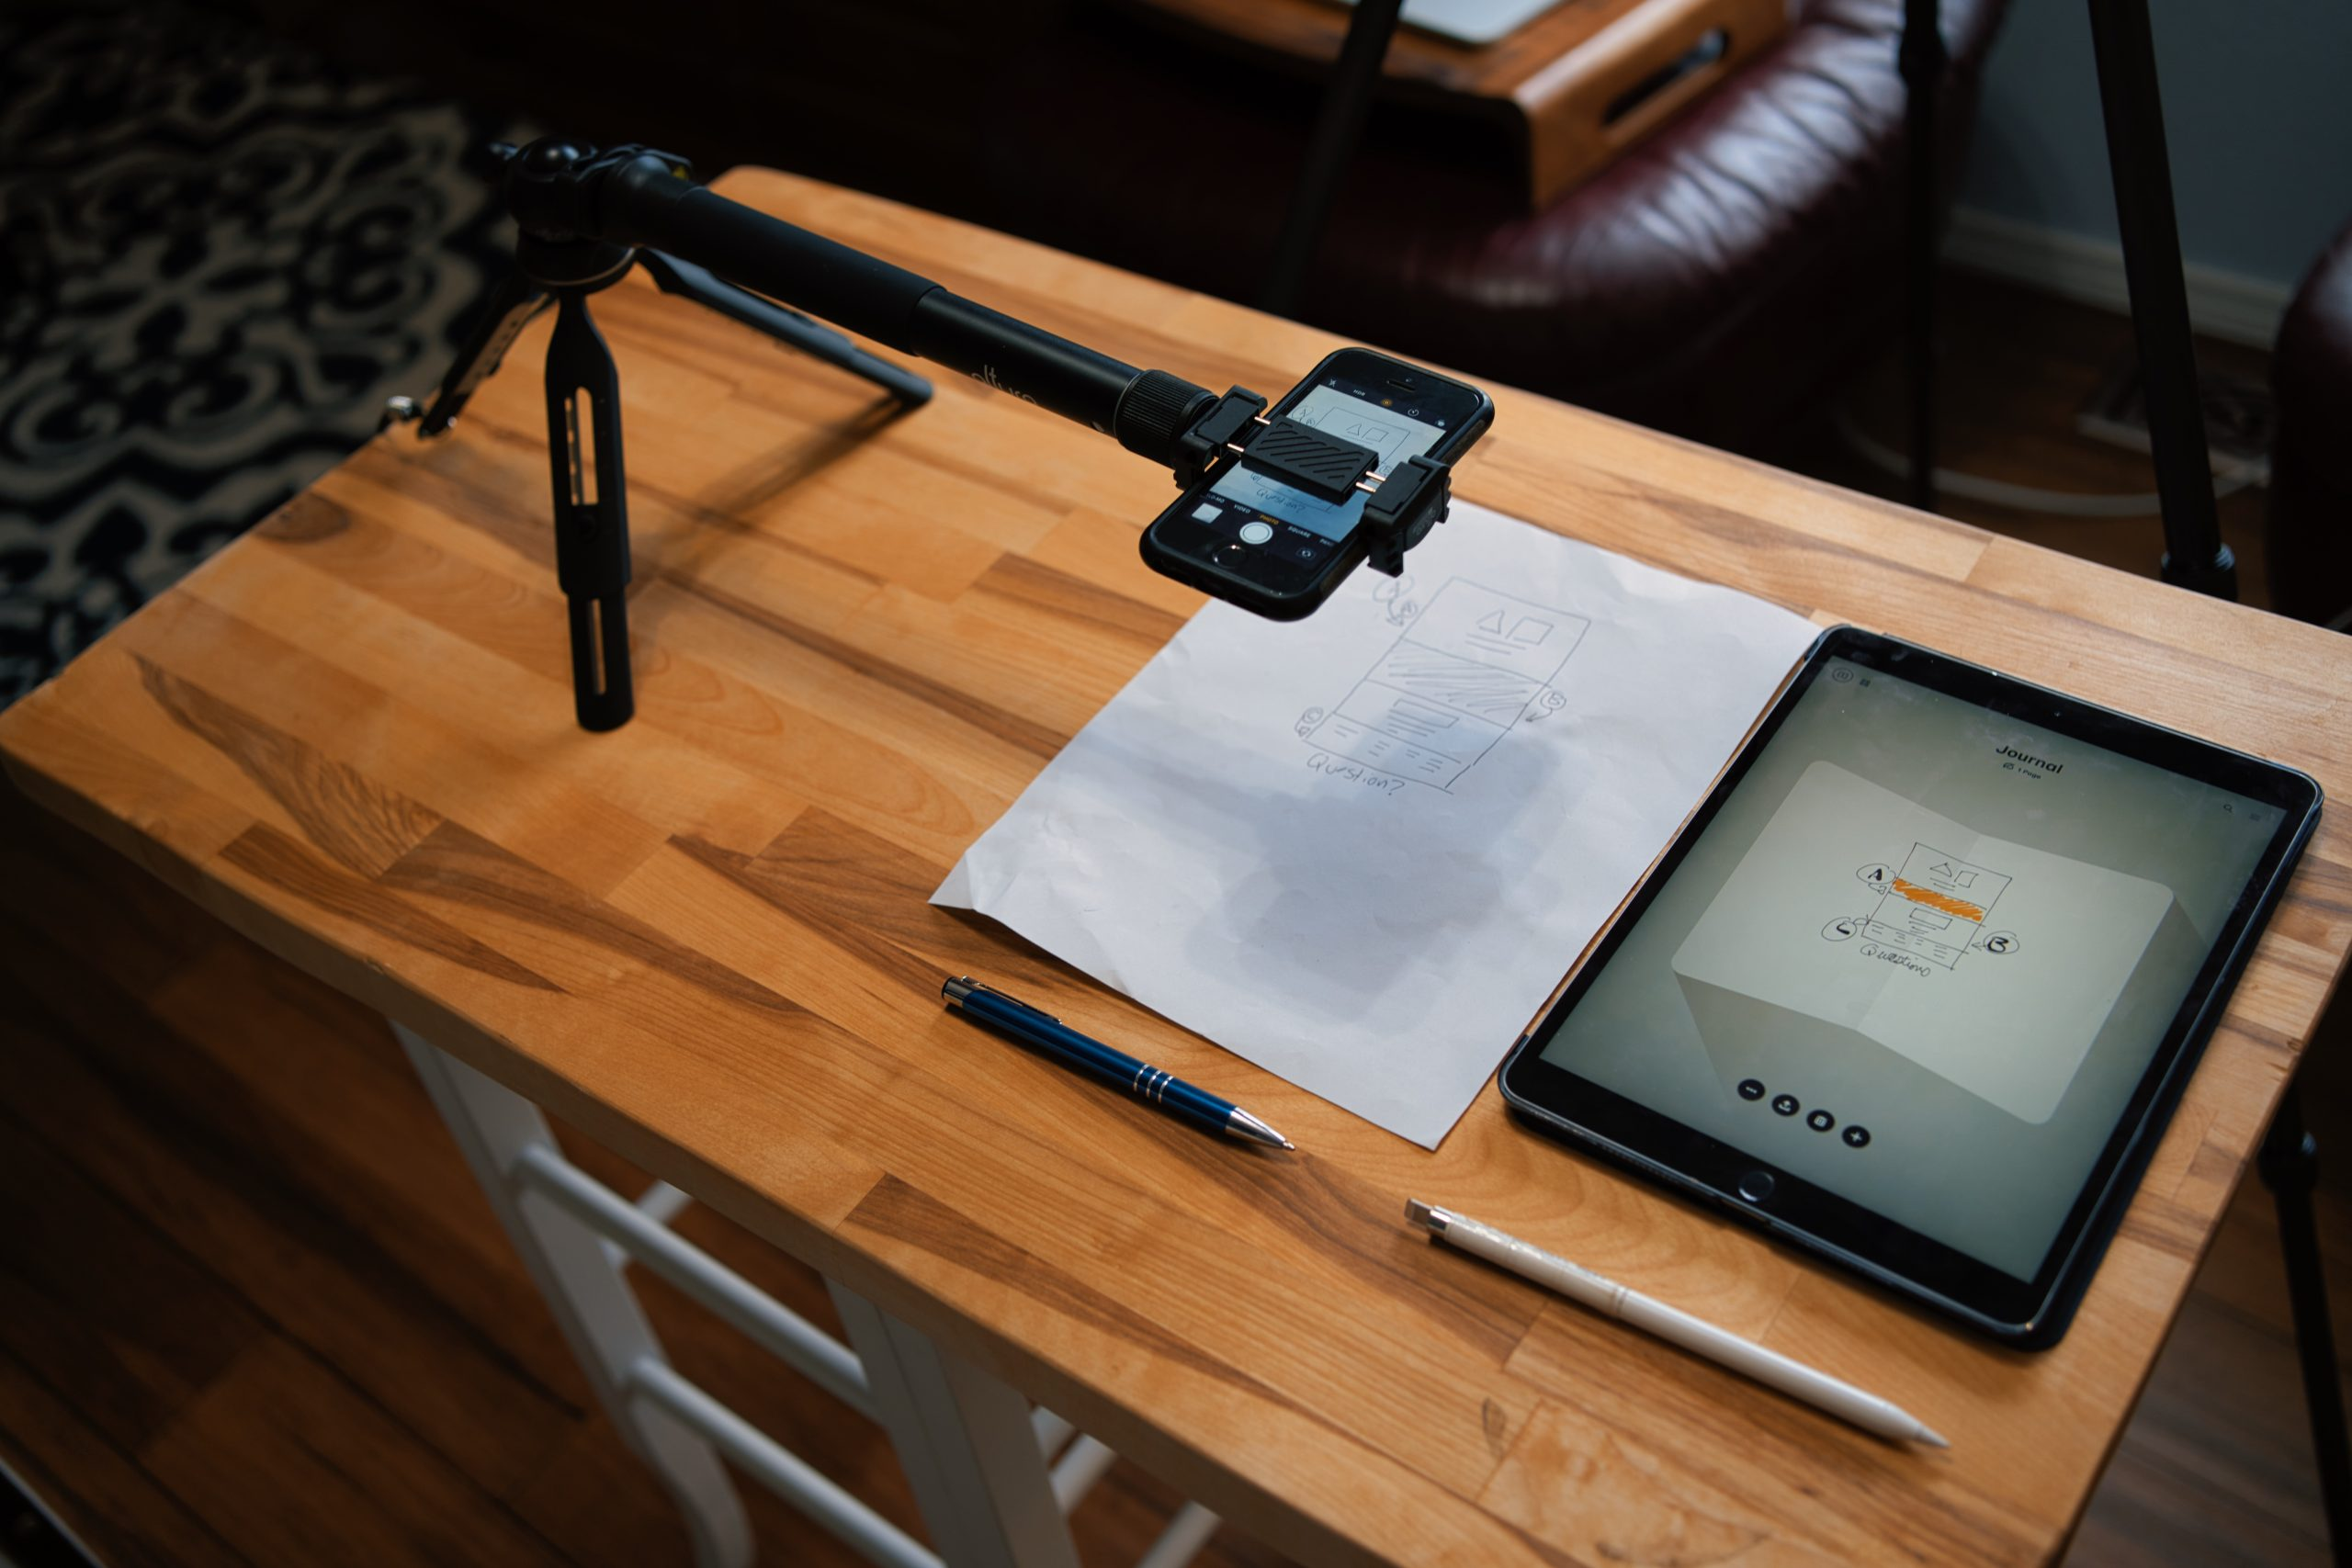 From an angle: Overhead shot of tripod with extnesion holding an iPhone with the video camera app open, paper and pen below it, iPad pro and pencil beside it